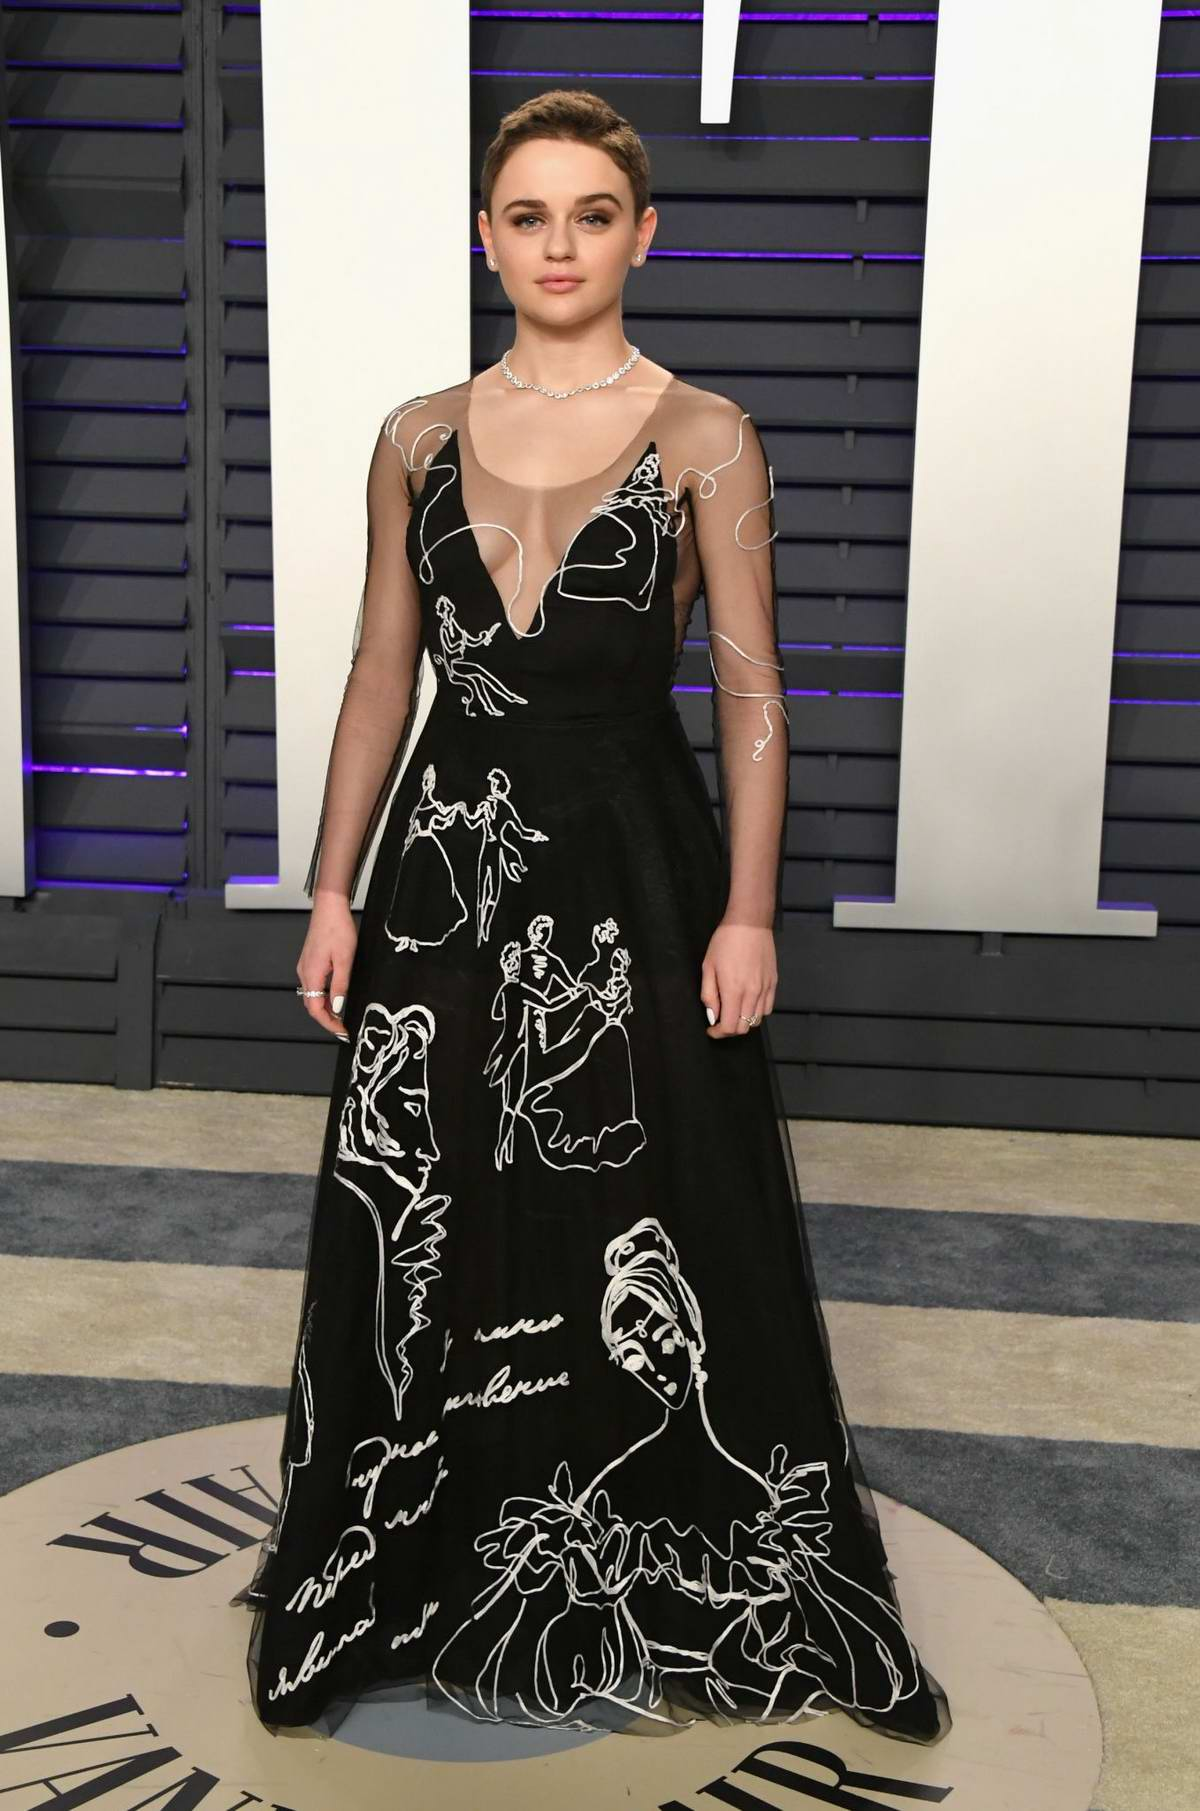 Joey King attends the Vanity Fair Oscar Party at Wallis Annenberg Center for the Performing Arts in Beverly Hills, California